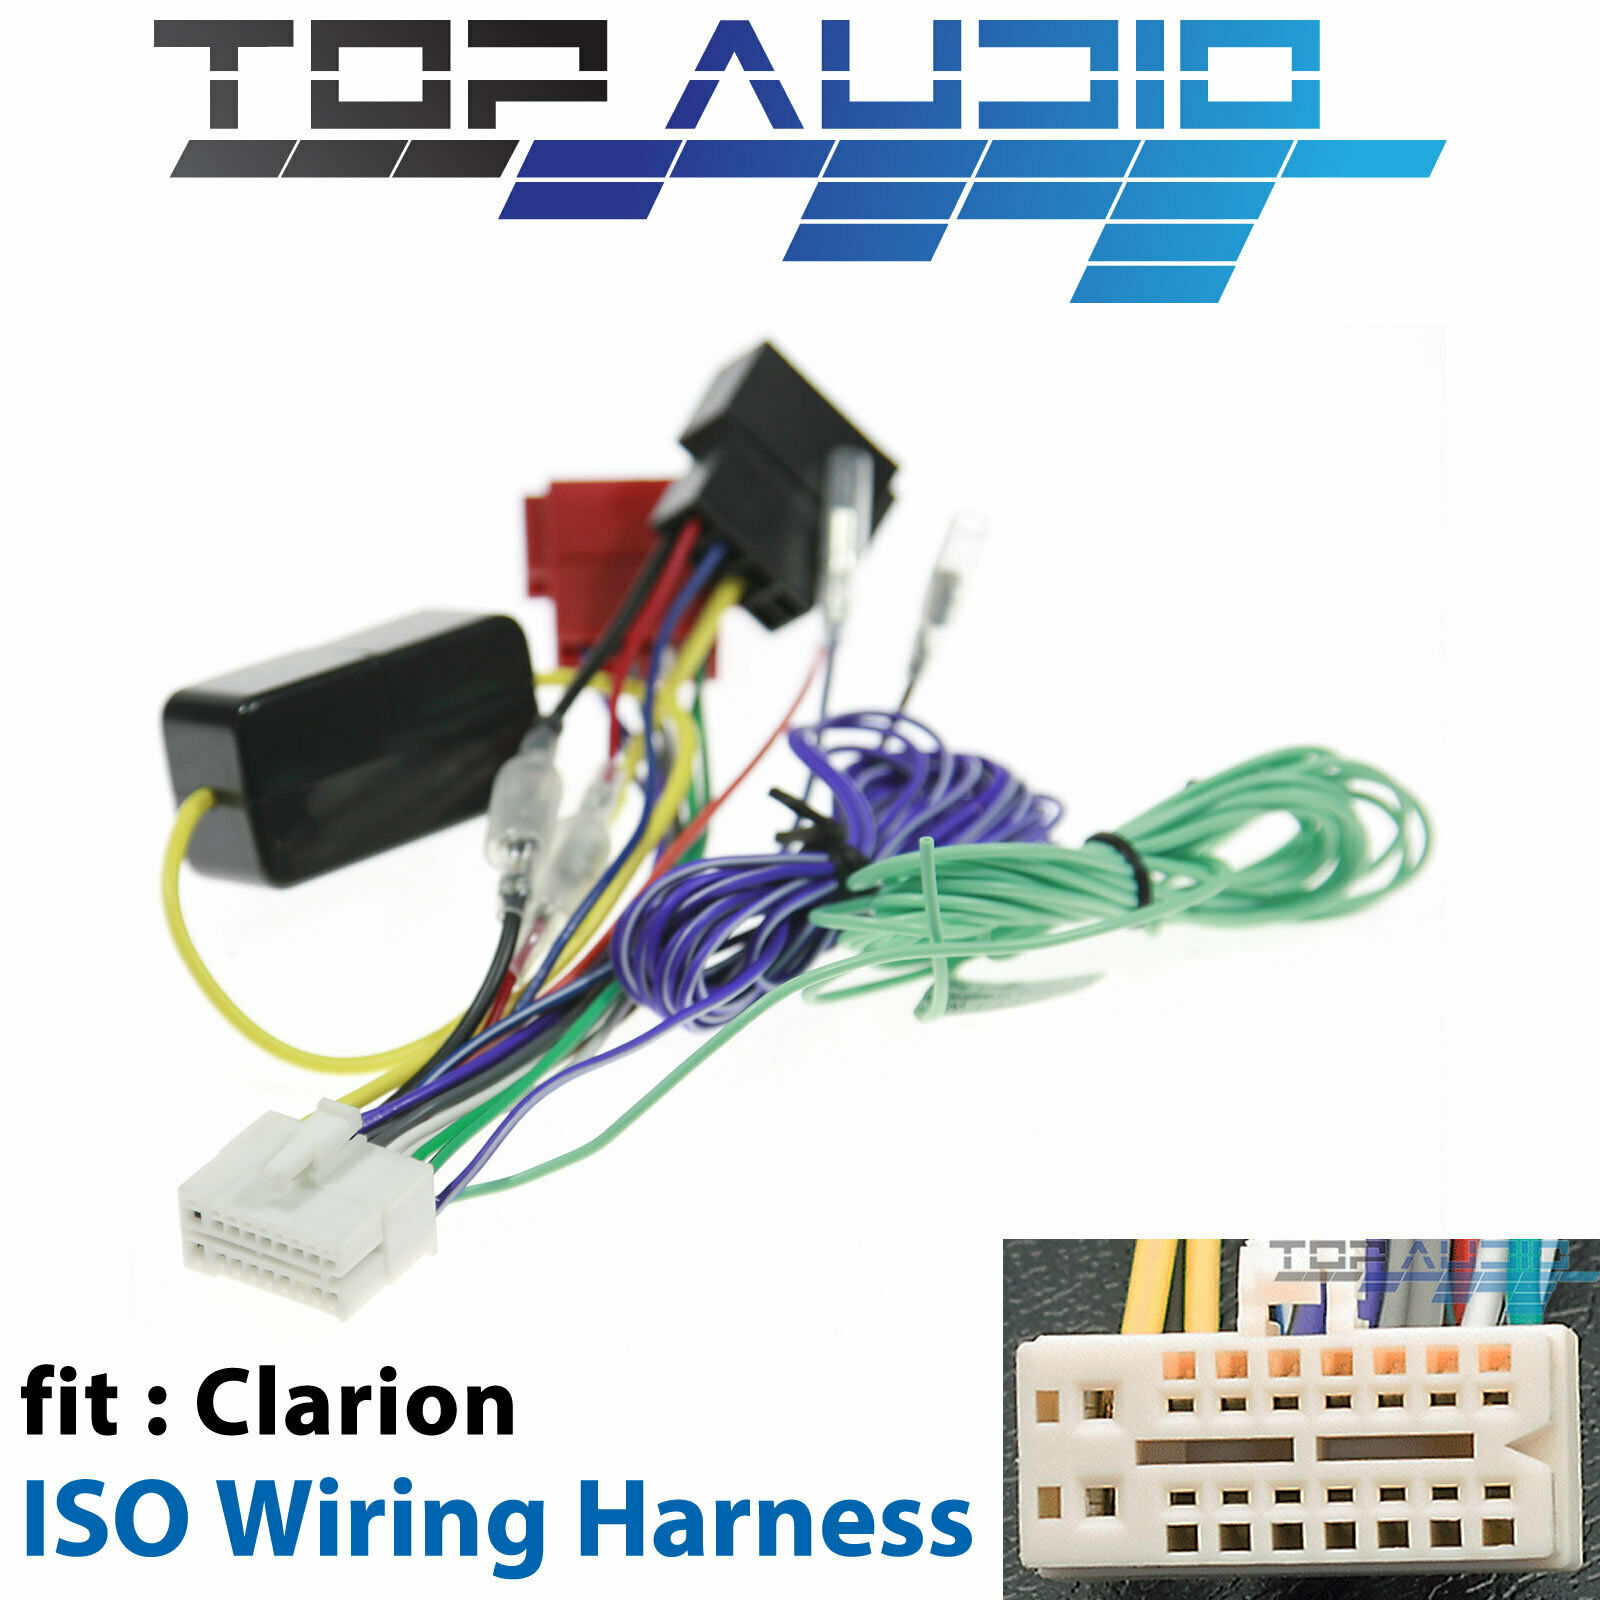 Clarion Vz402a Iso Wiring Harness Cable Connector Adaptor Lead Loom 5 Wire Electrical Connectors Plug 1 Of 3only Available